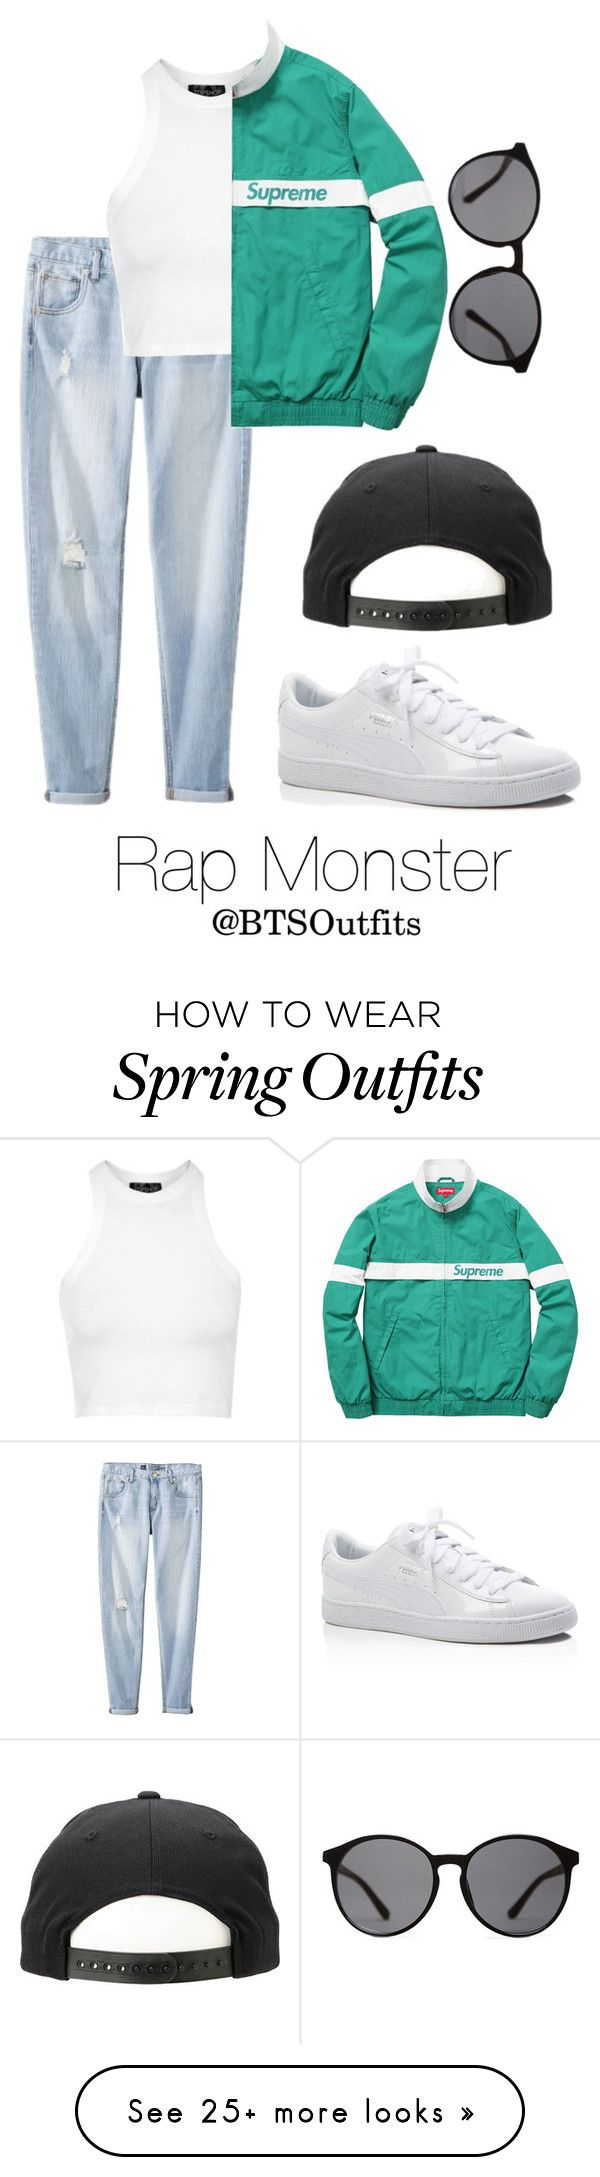 """Spring Outfit Inspired by Rap Monster"" by btsoutfits on Polyvore featuring Mossimo, Topshop, Linda Farrow, Puma, women's clothing, women, female, woman, misses and juniors"